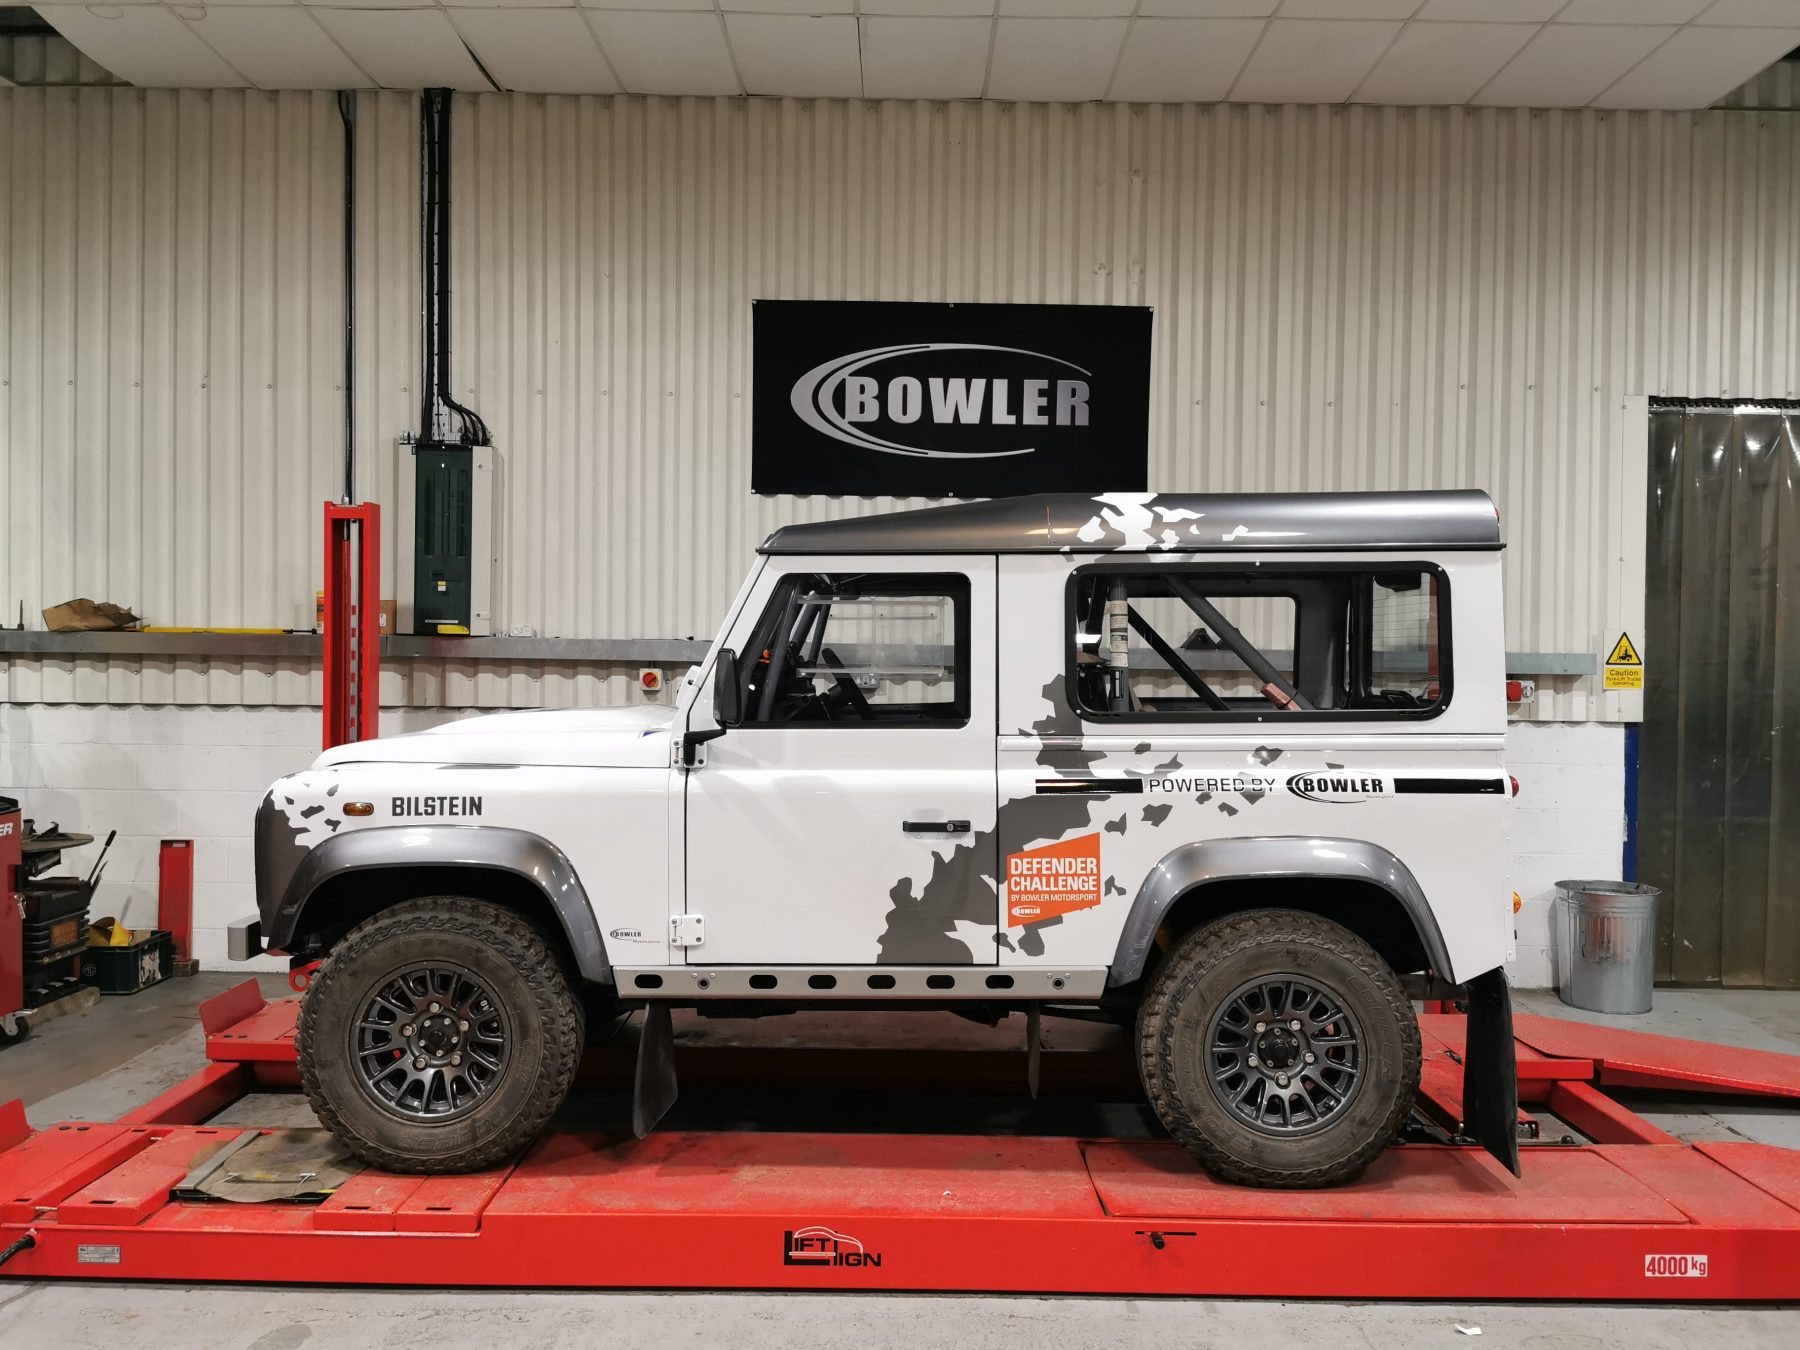 2013 Bowler Defender Challenge Car